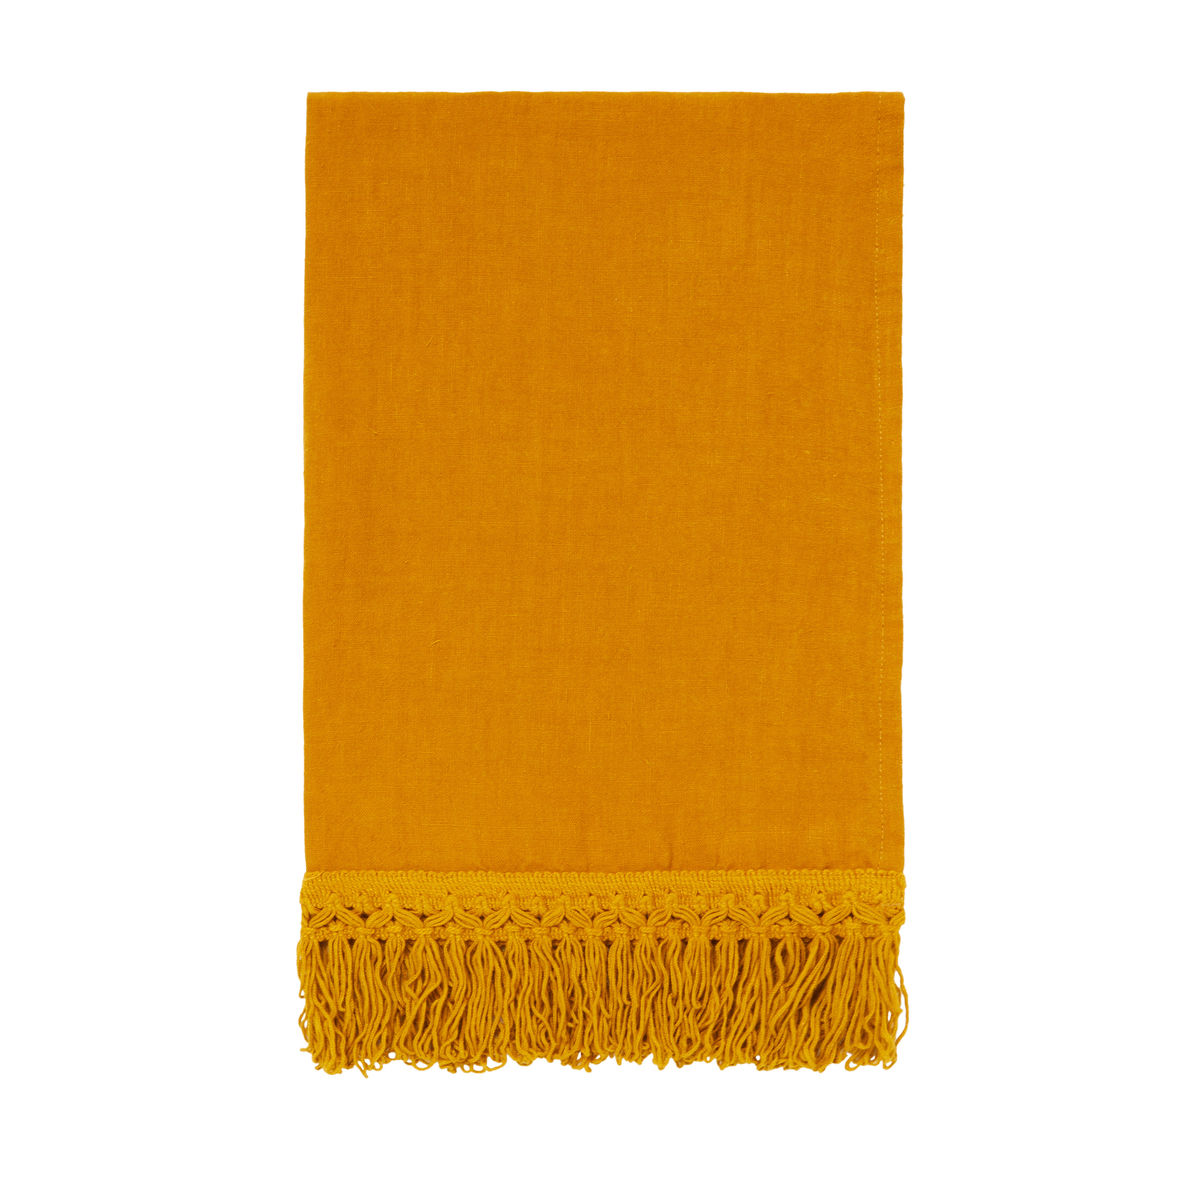 Bath sheet with long fringe - product images  of